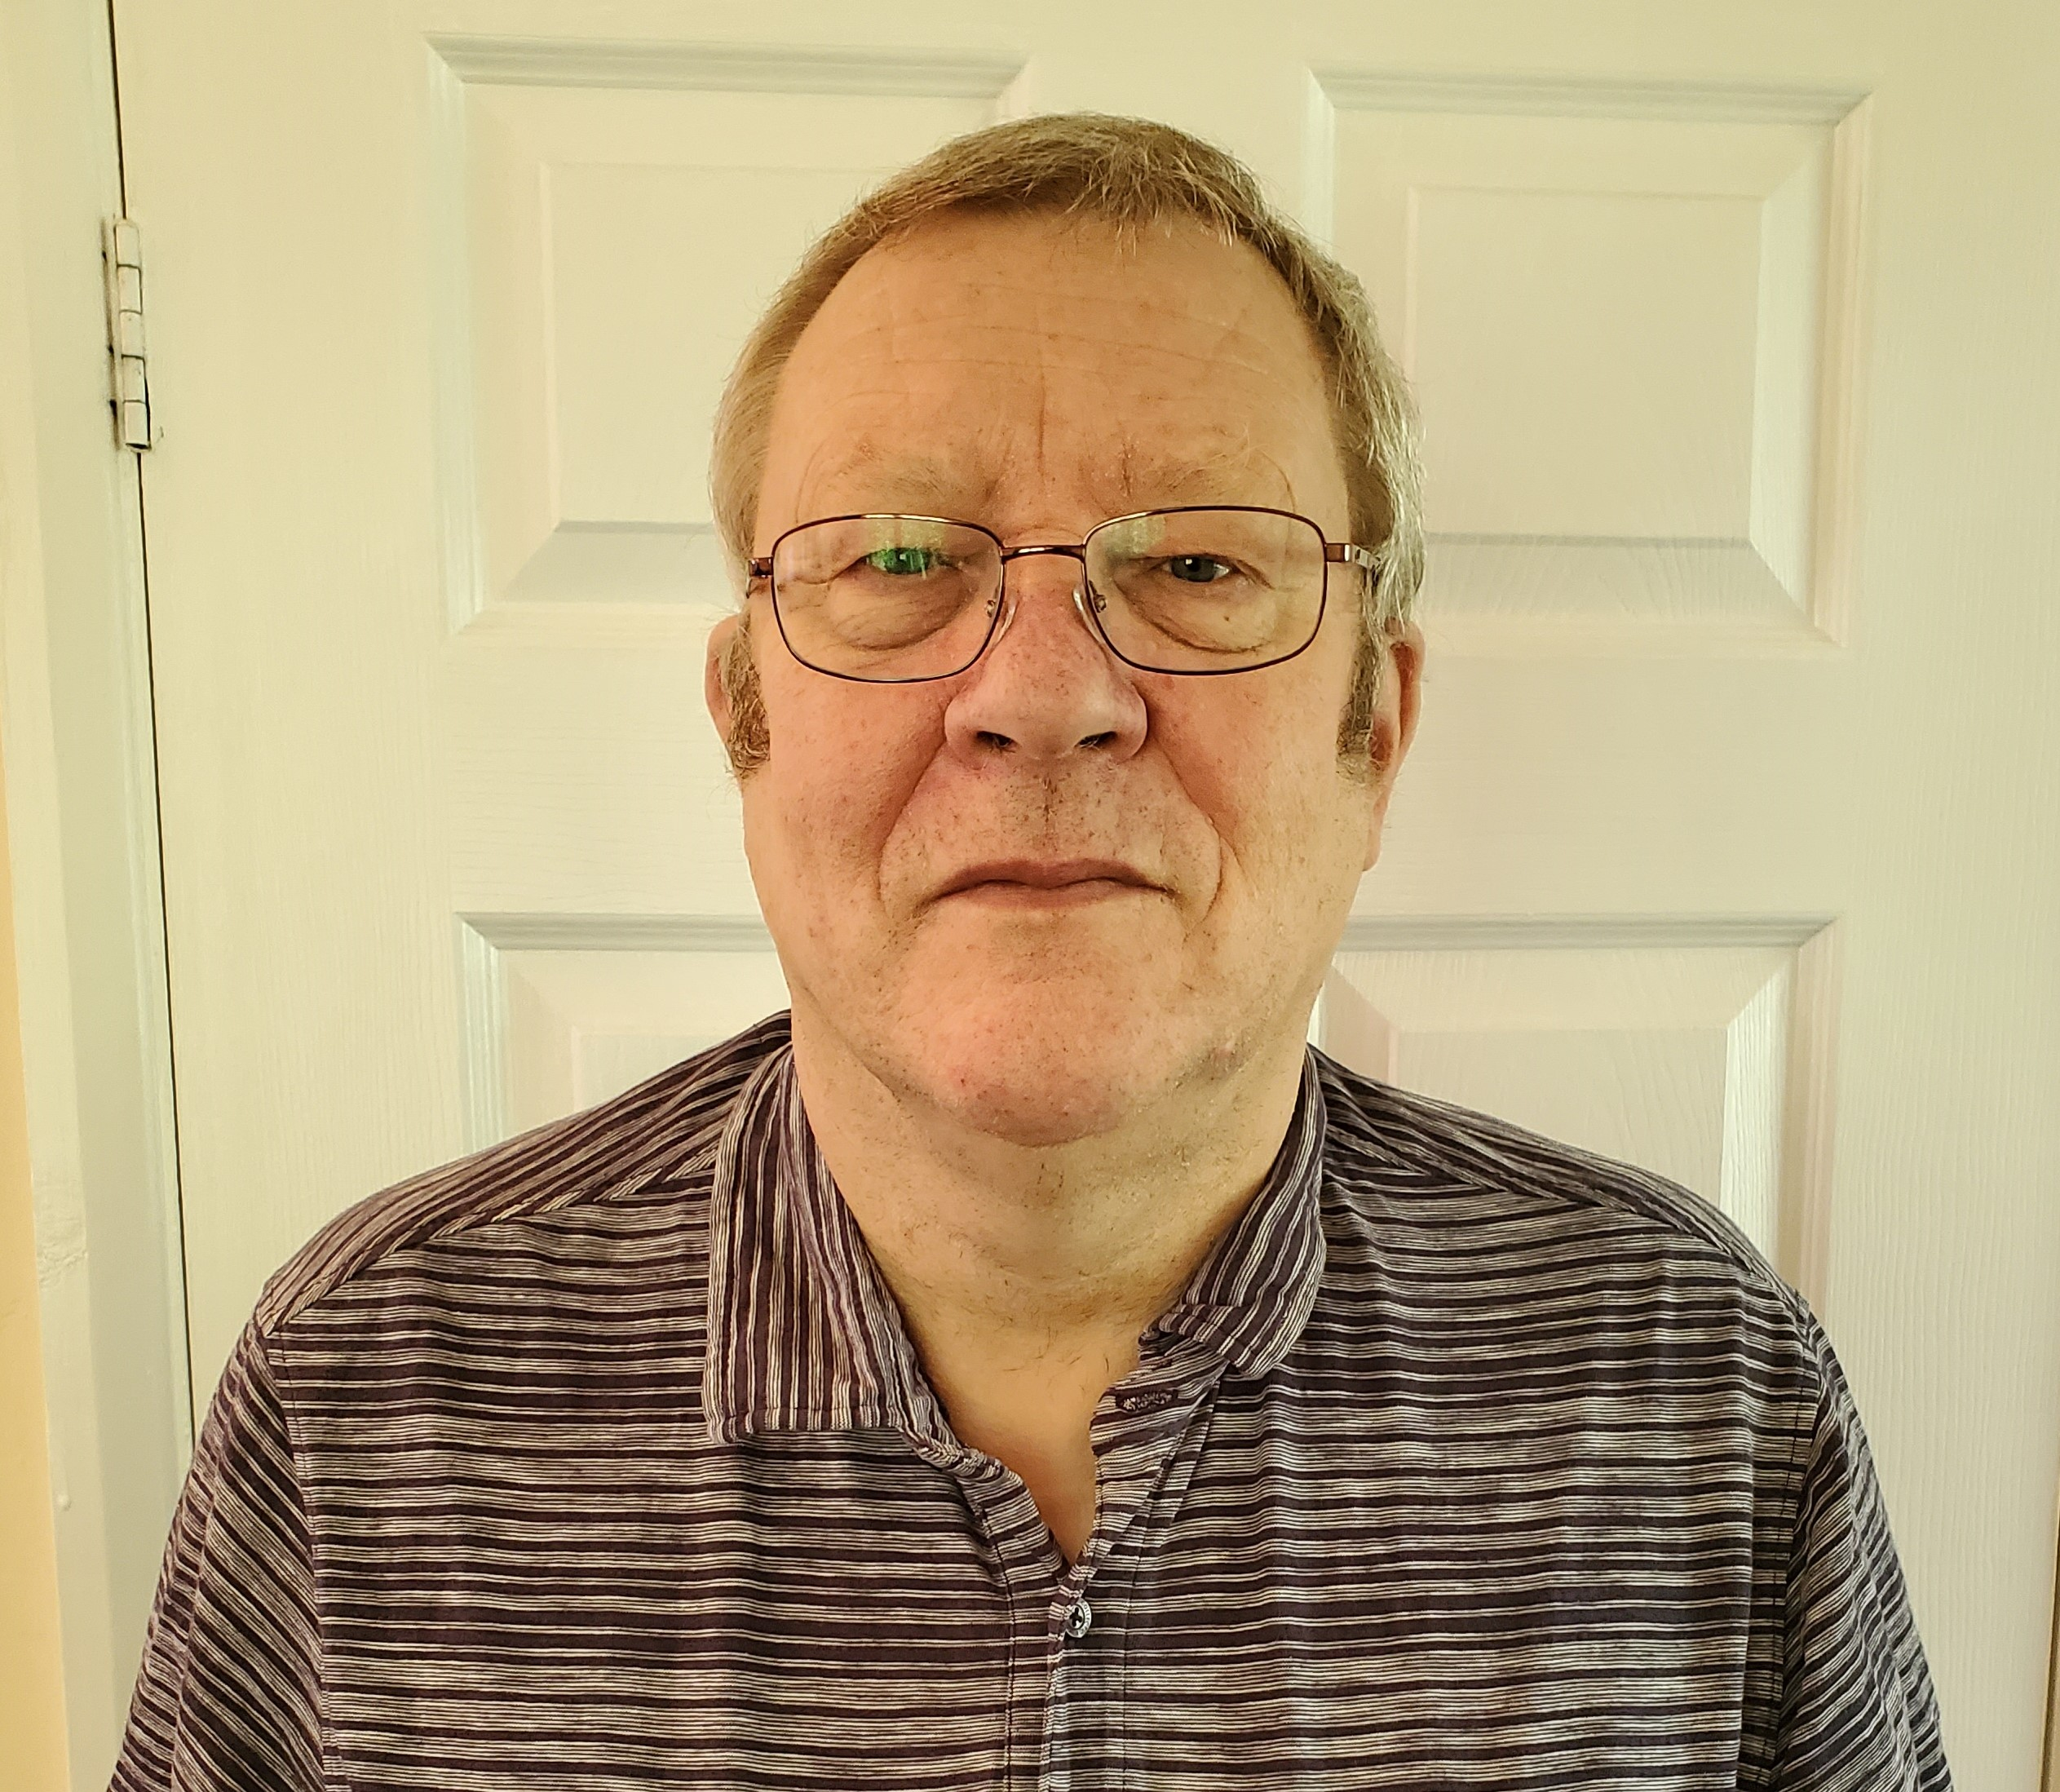 Profile picture of Dr Michael Oakes